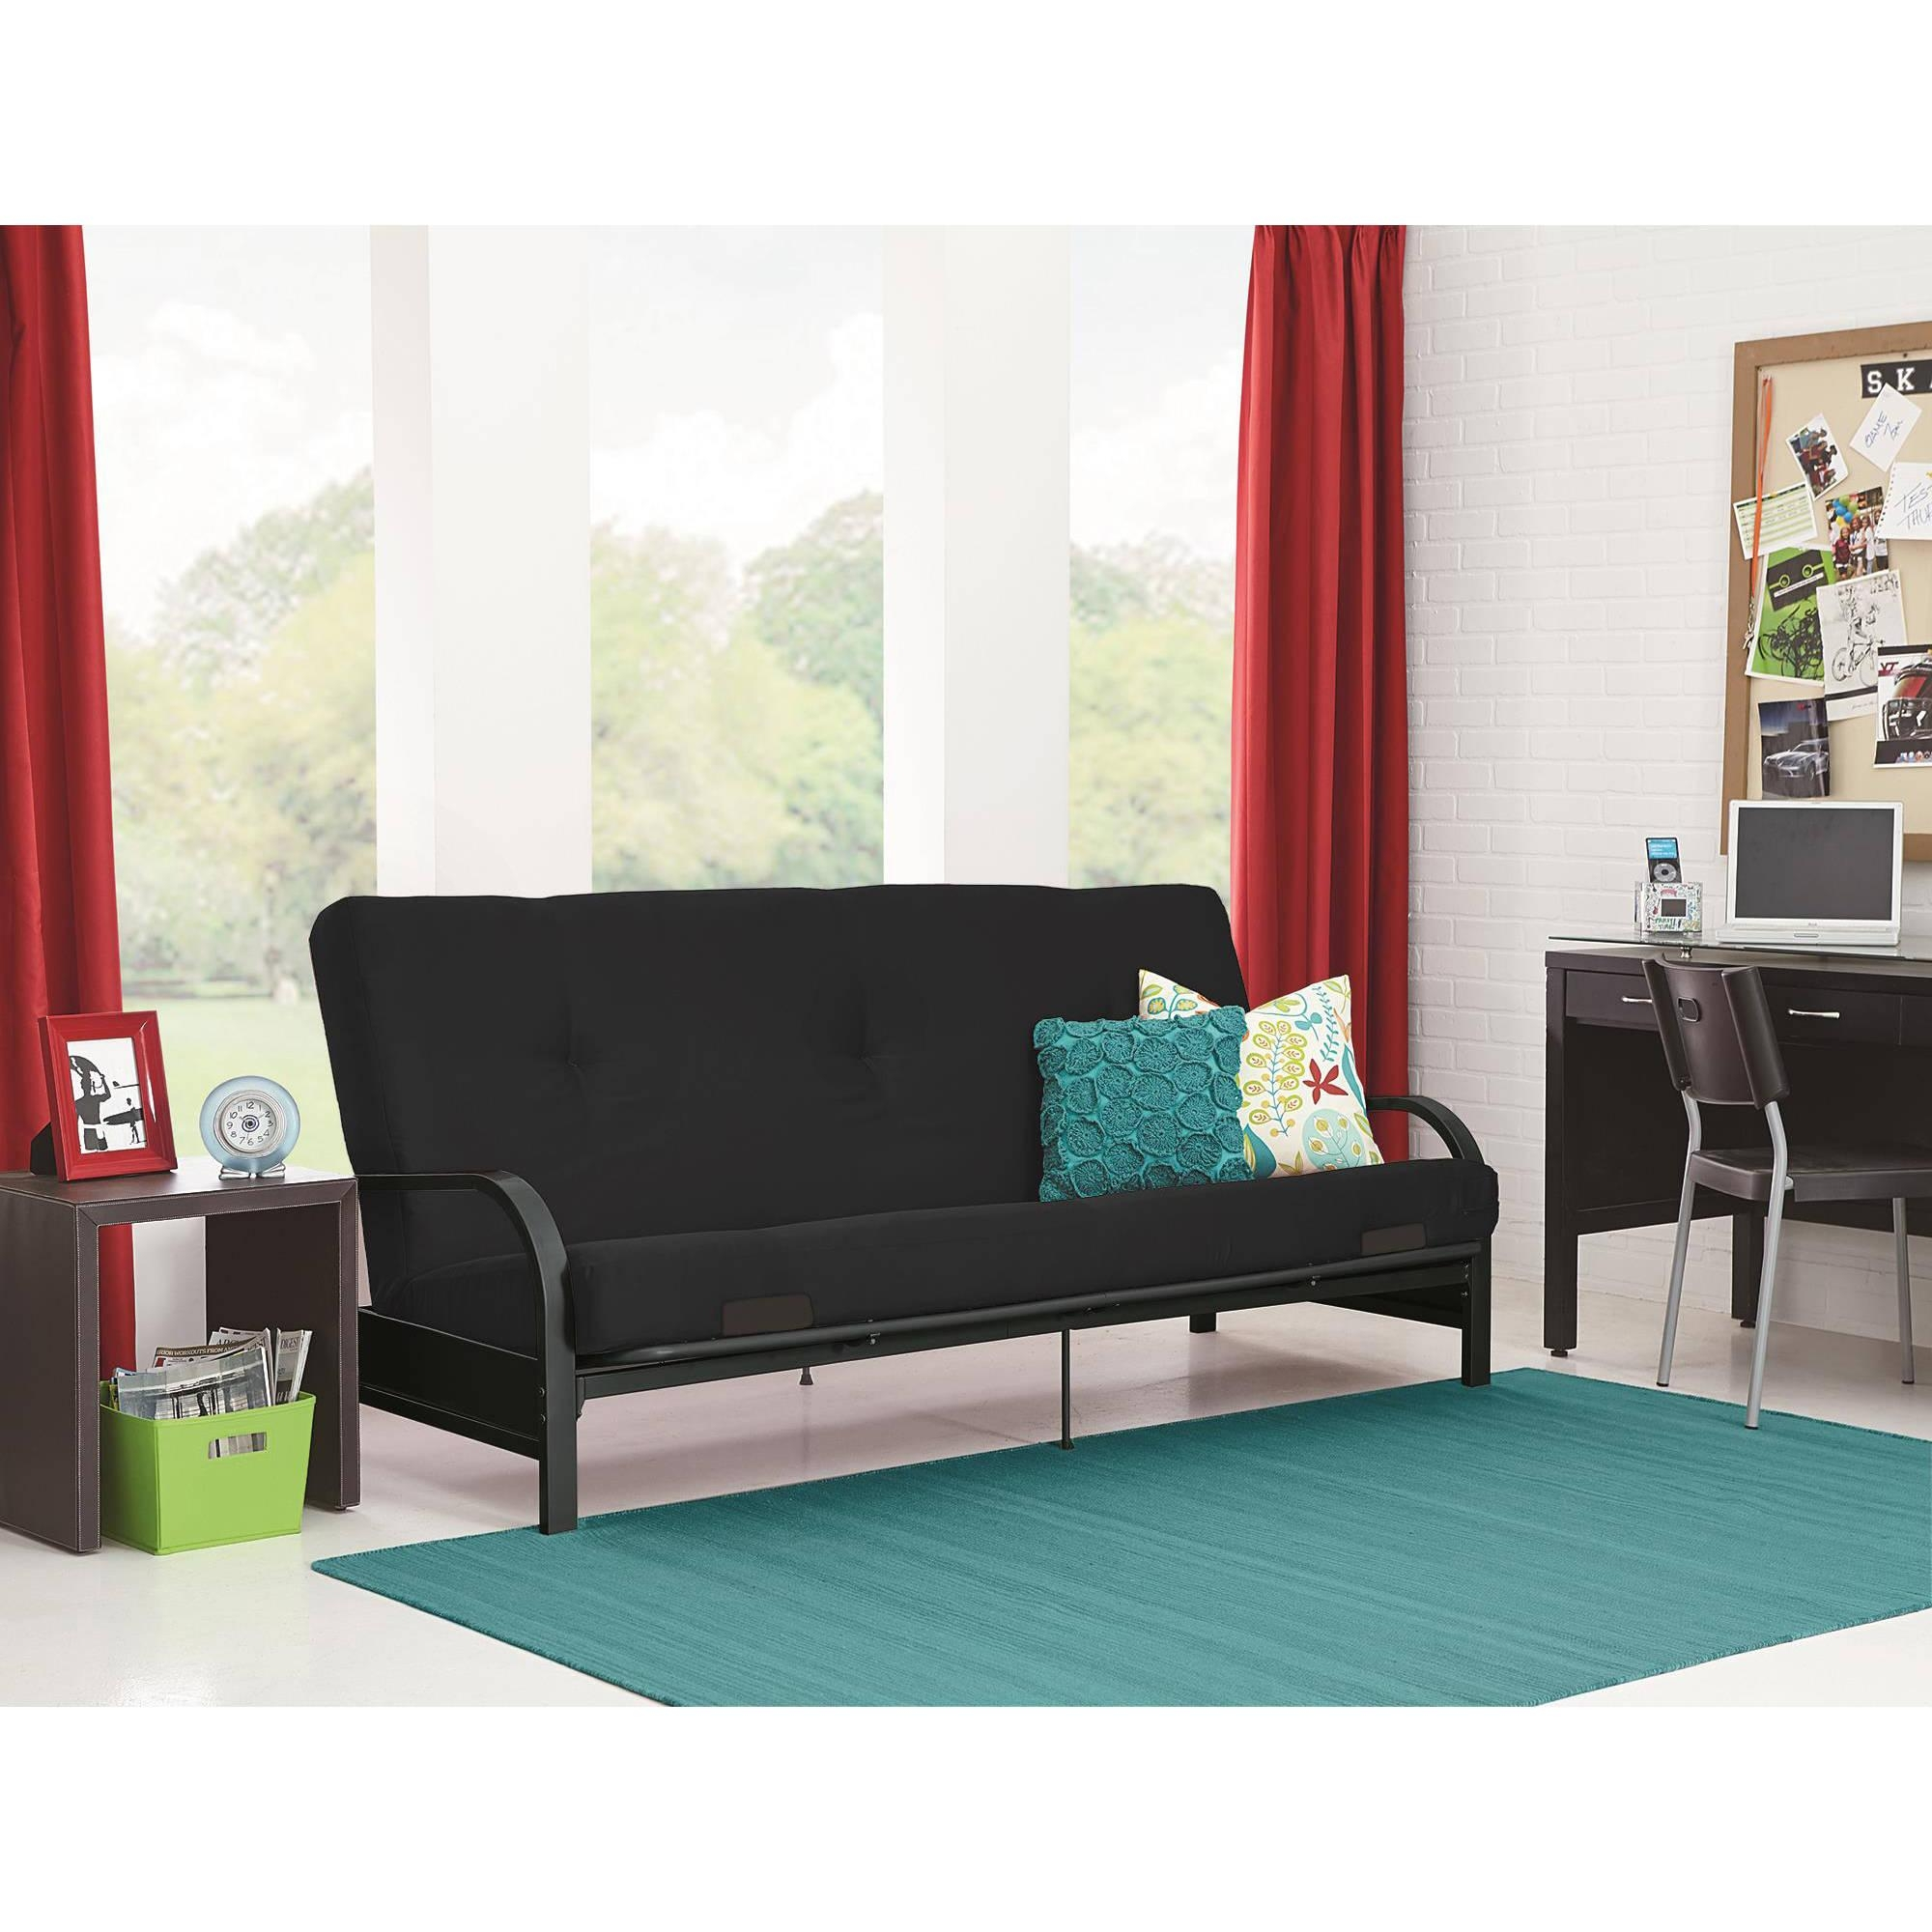 Futons, Futon Beds, Sofa Beds – Walmart For Futon Couch Beds (View 18 of 20)